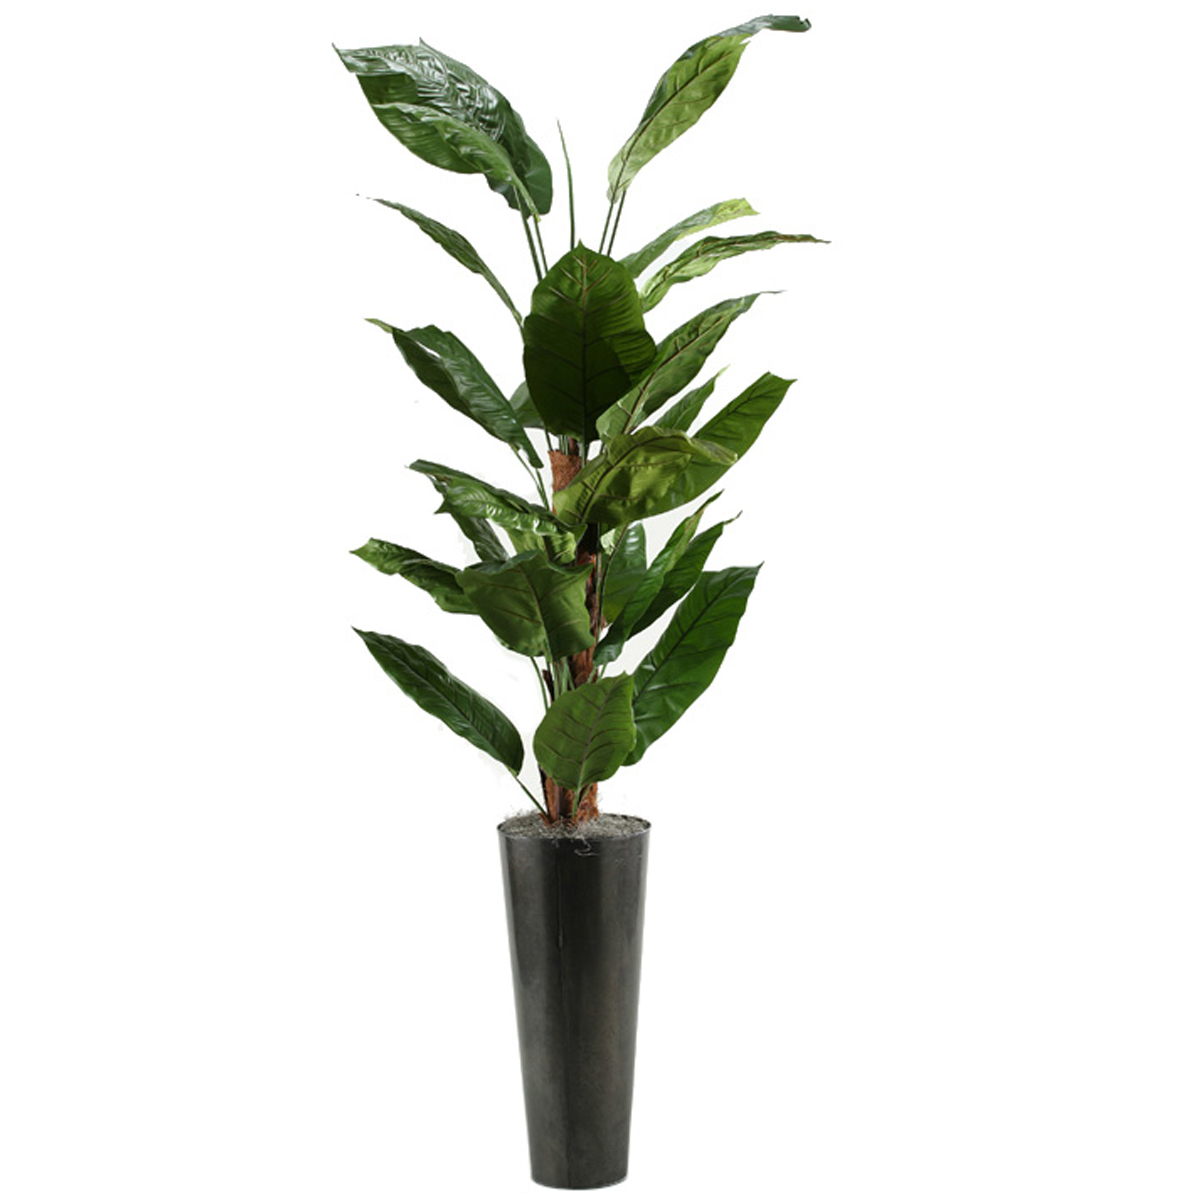 Picture of 7' SPATH TREE IN A METAL PLANTER